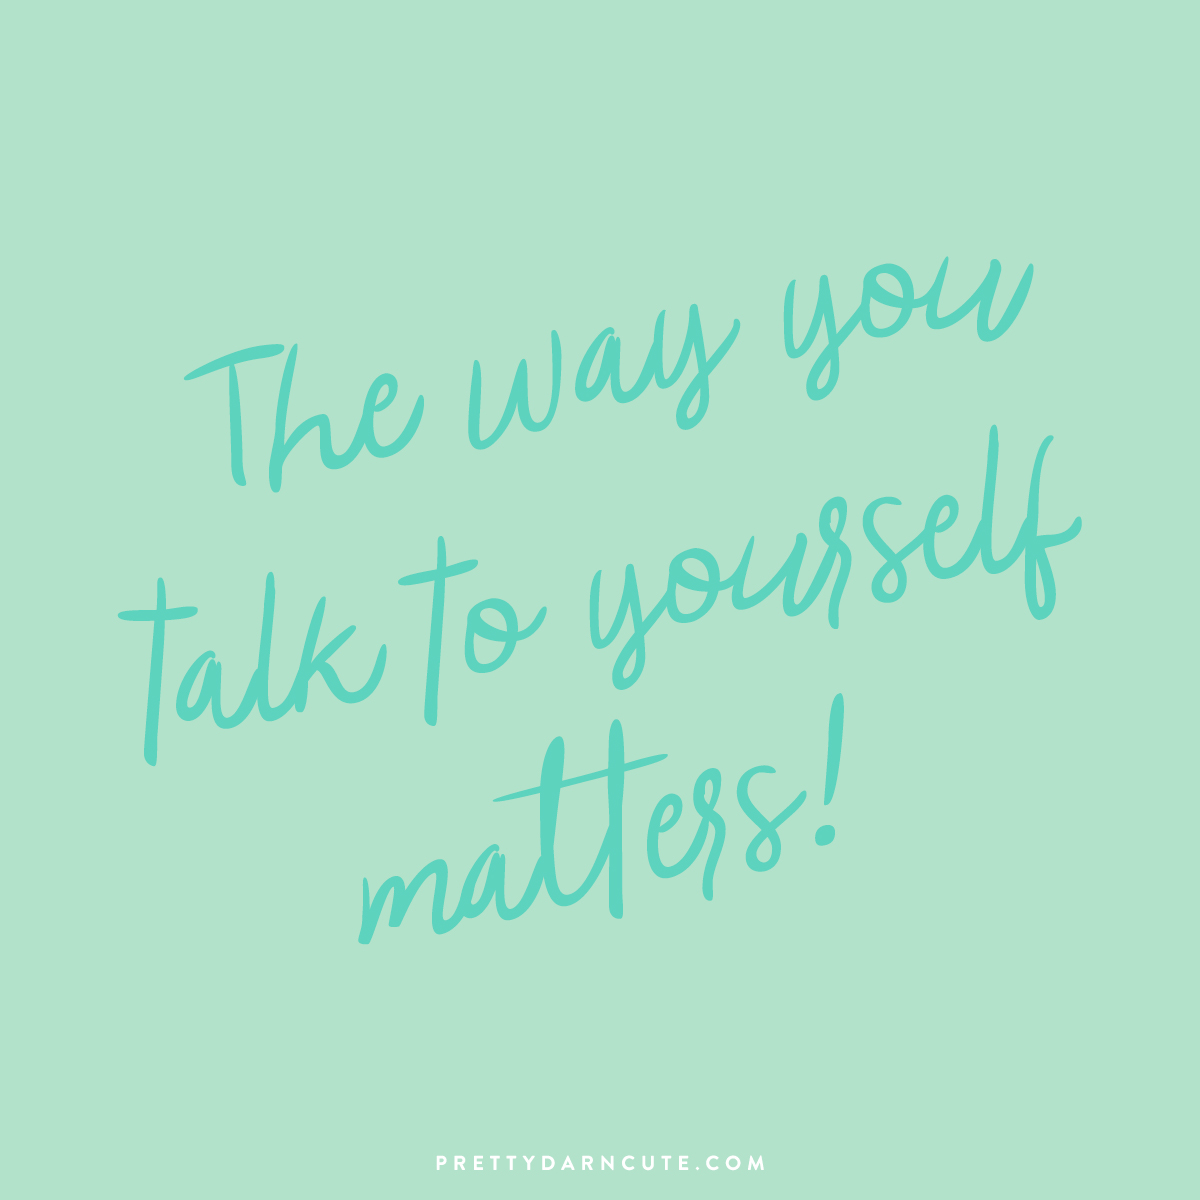 the-way-you-talk-to-yourself-matters-quote-graphic